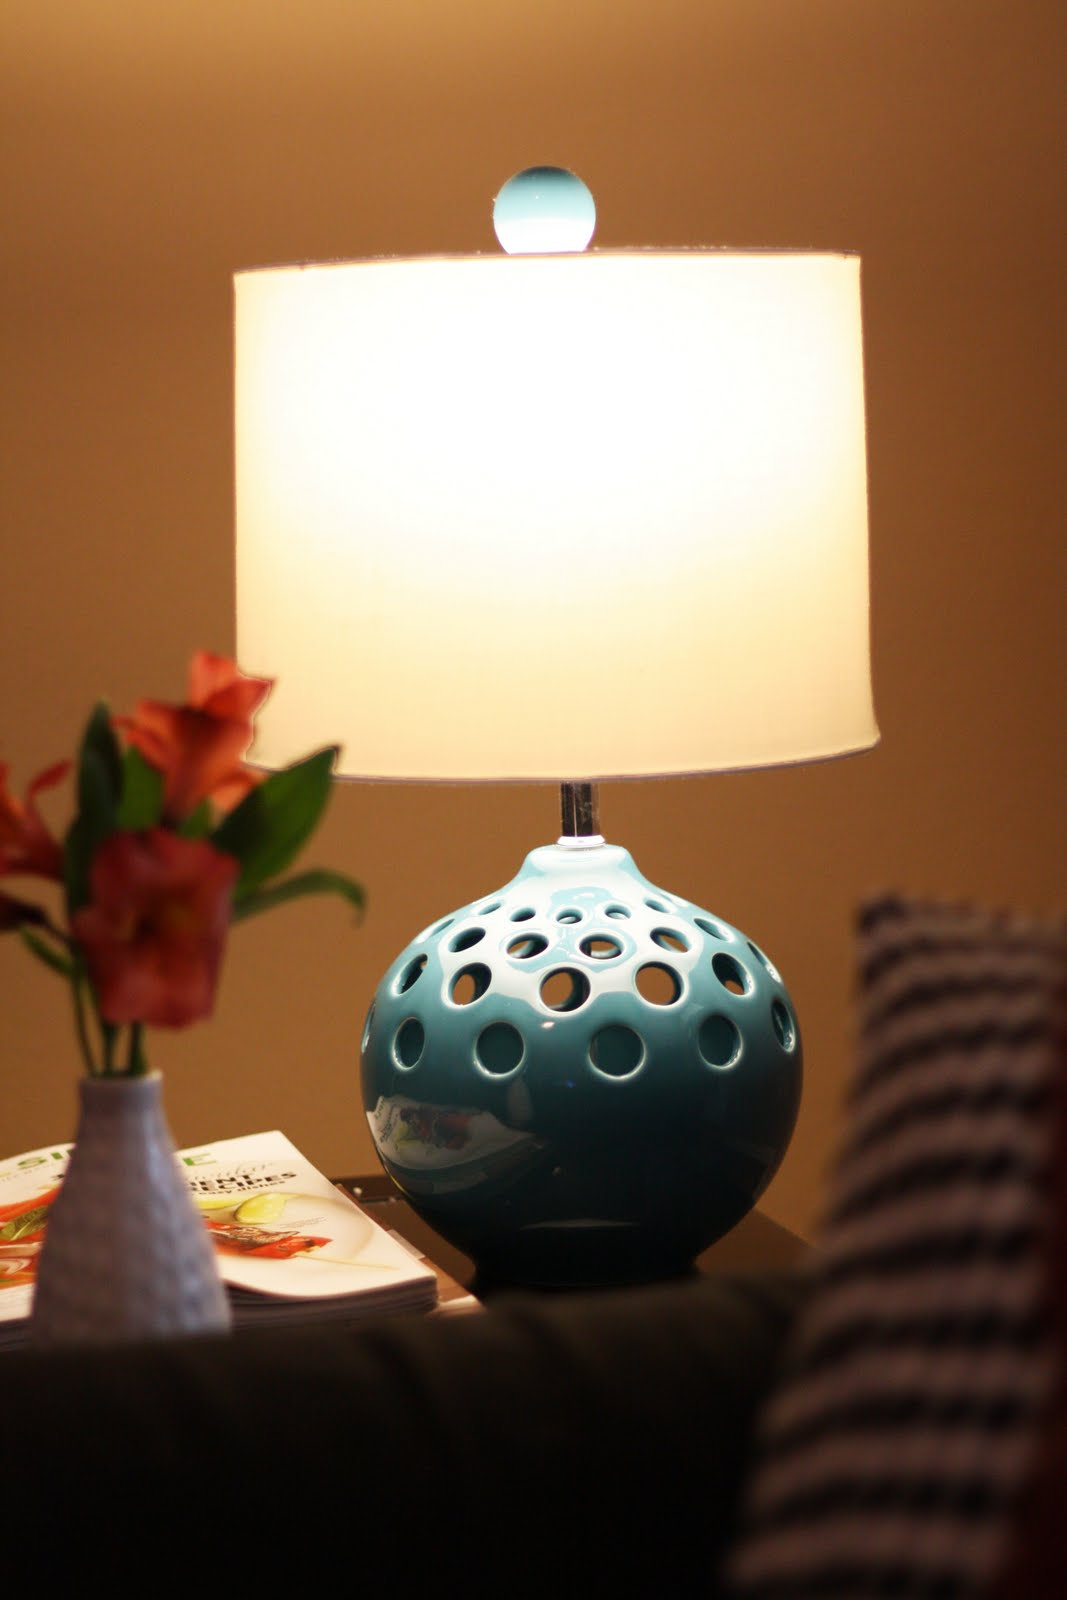 broyhill lamps home goods photo - 4